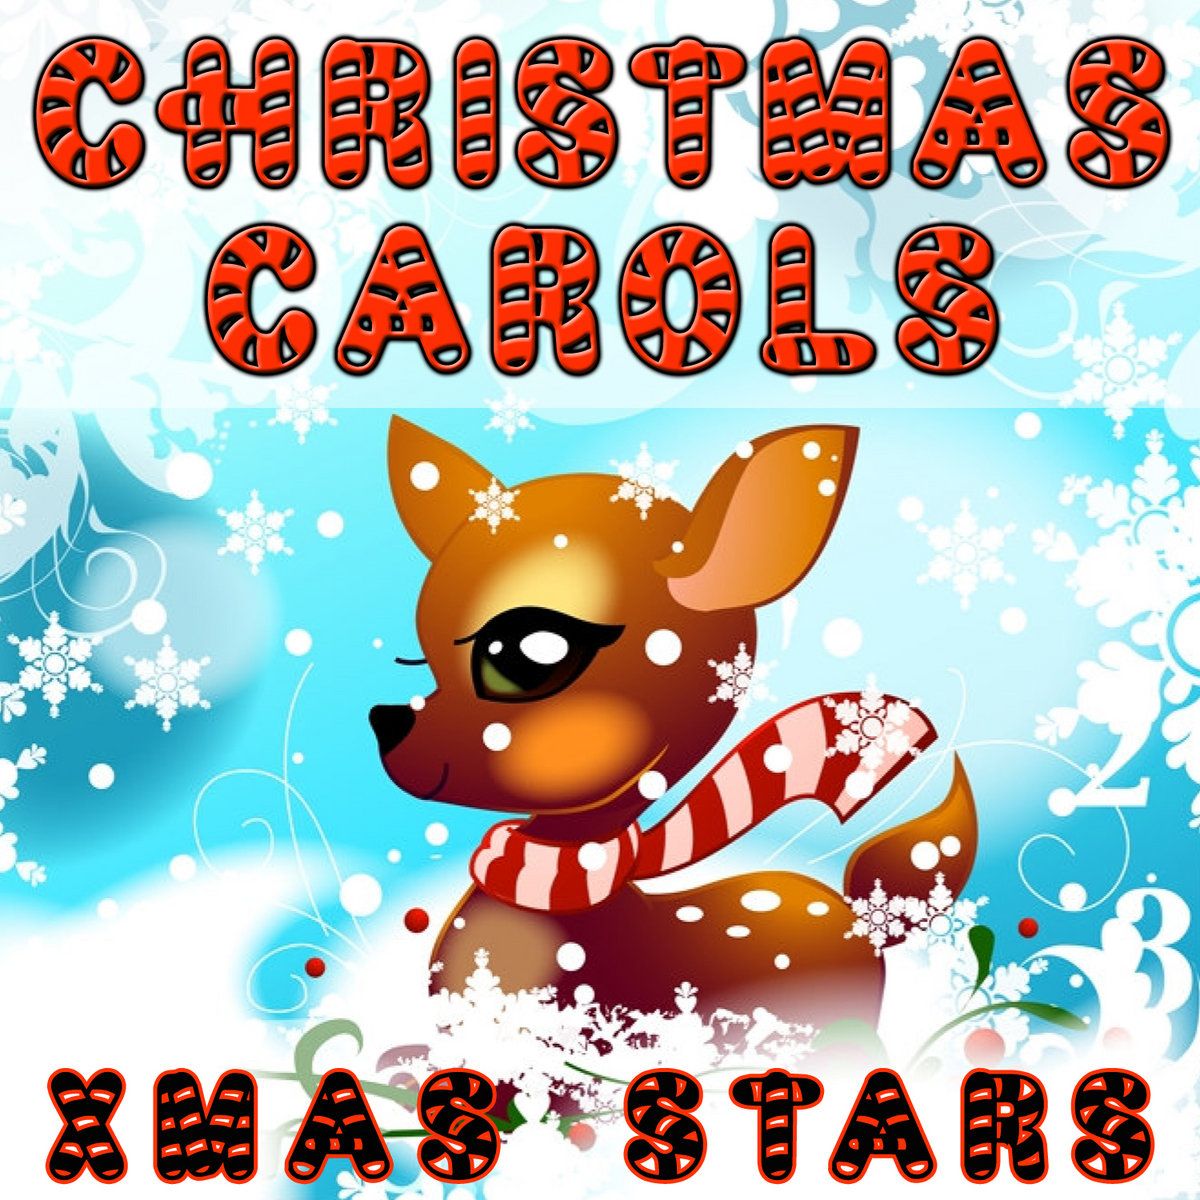 the twelve days of christmas from christmas carols instrumental christmas songs to sing along by mezza music - 12 Days Of Christmas Instrumental